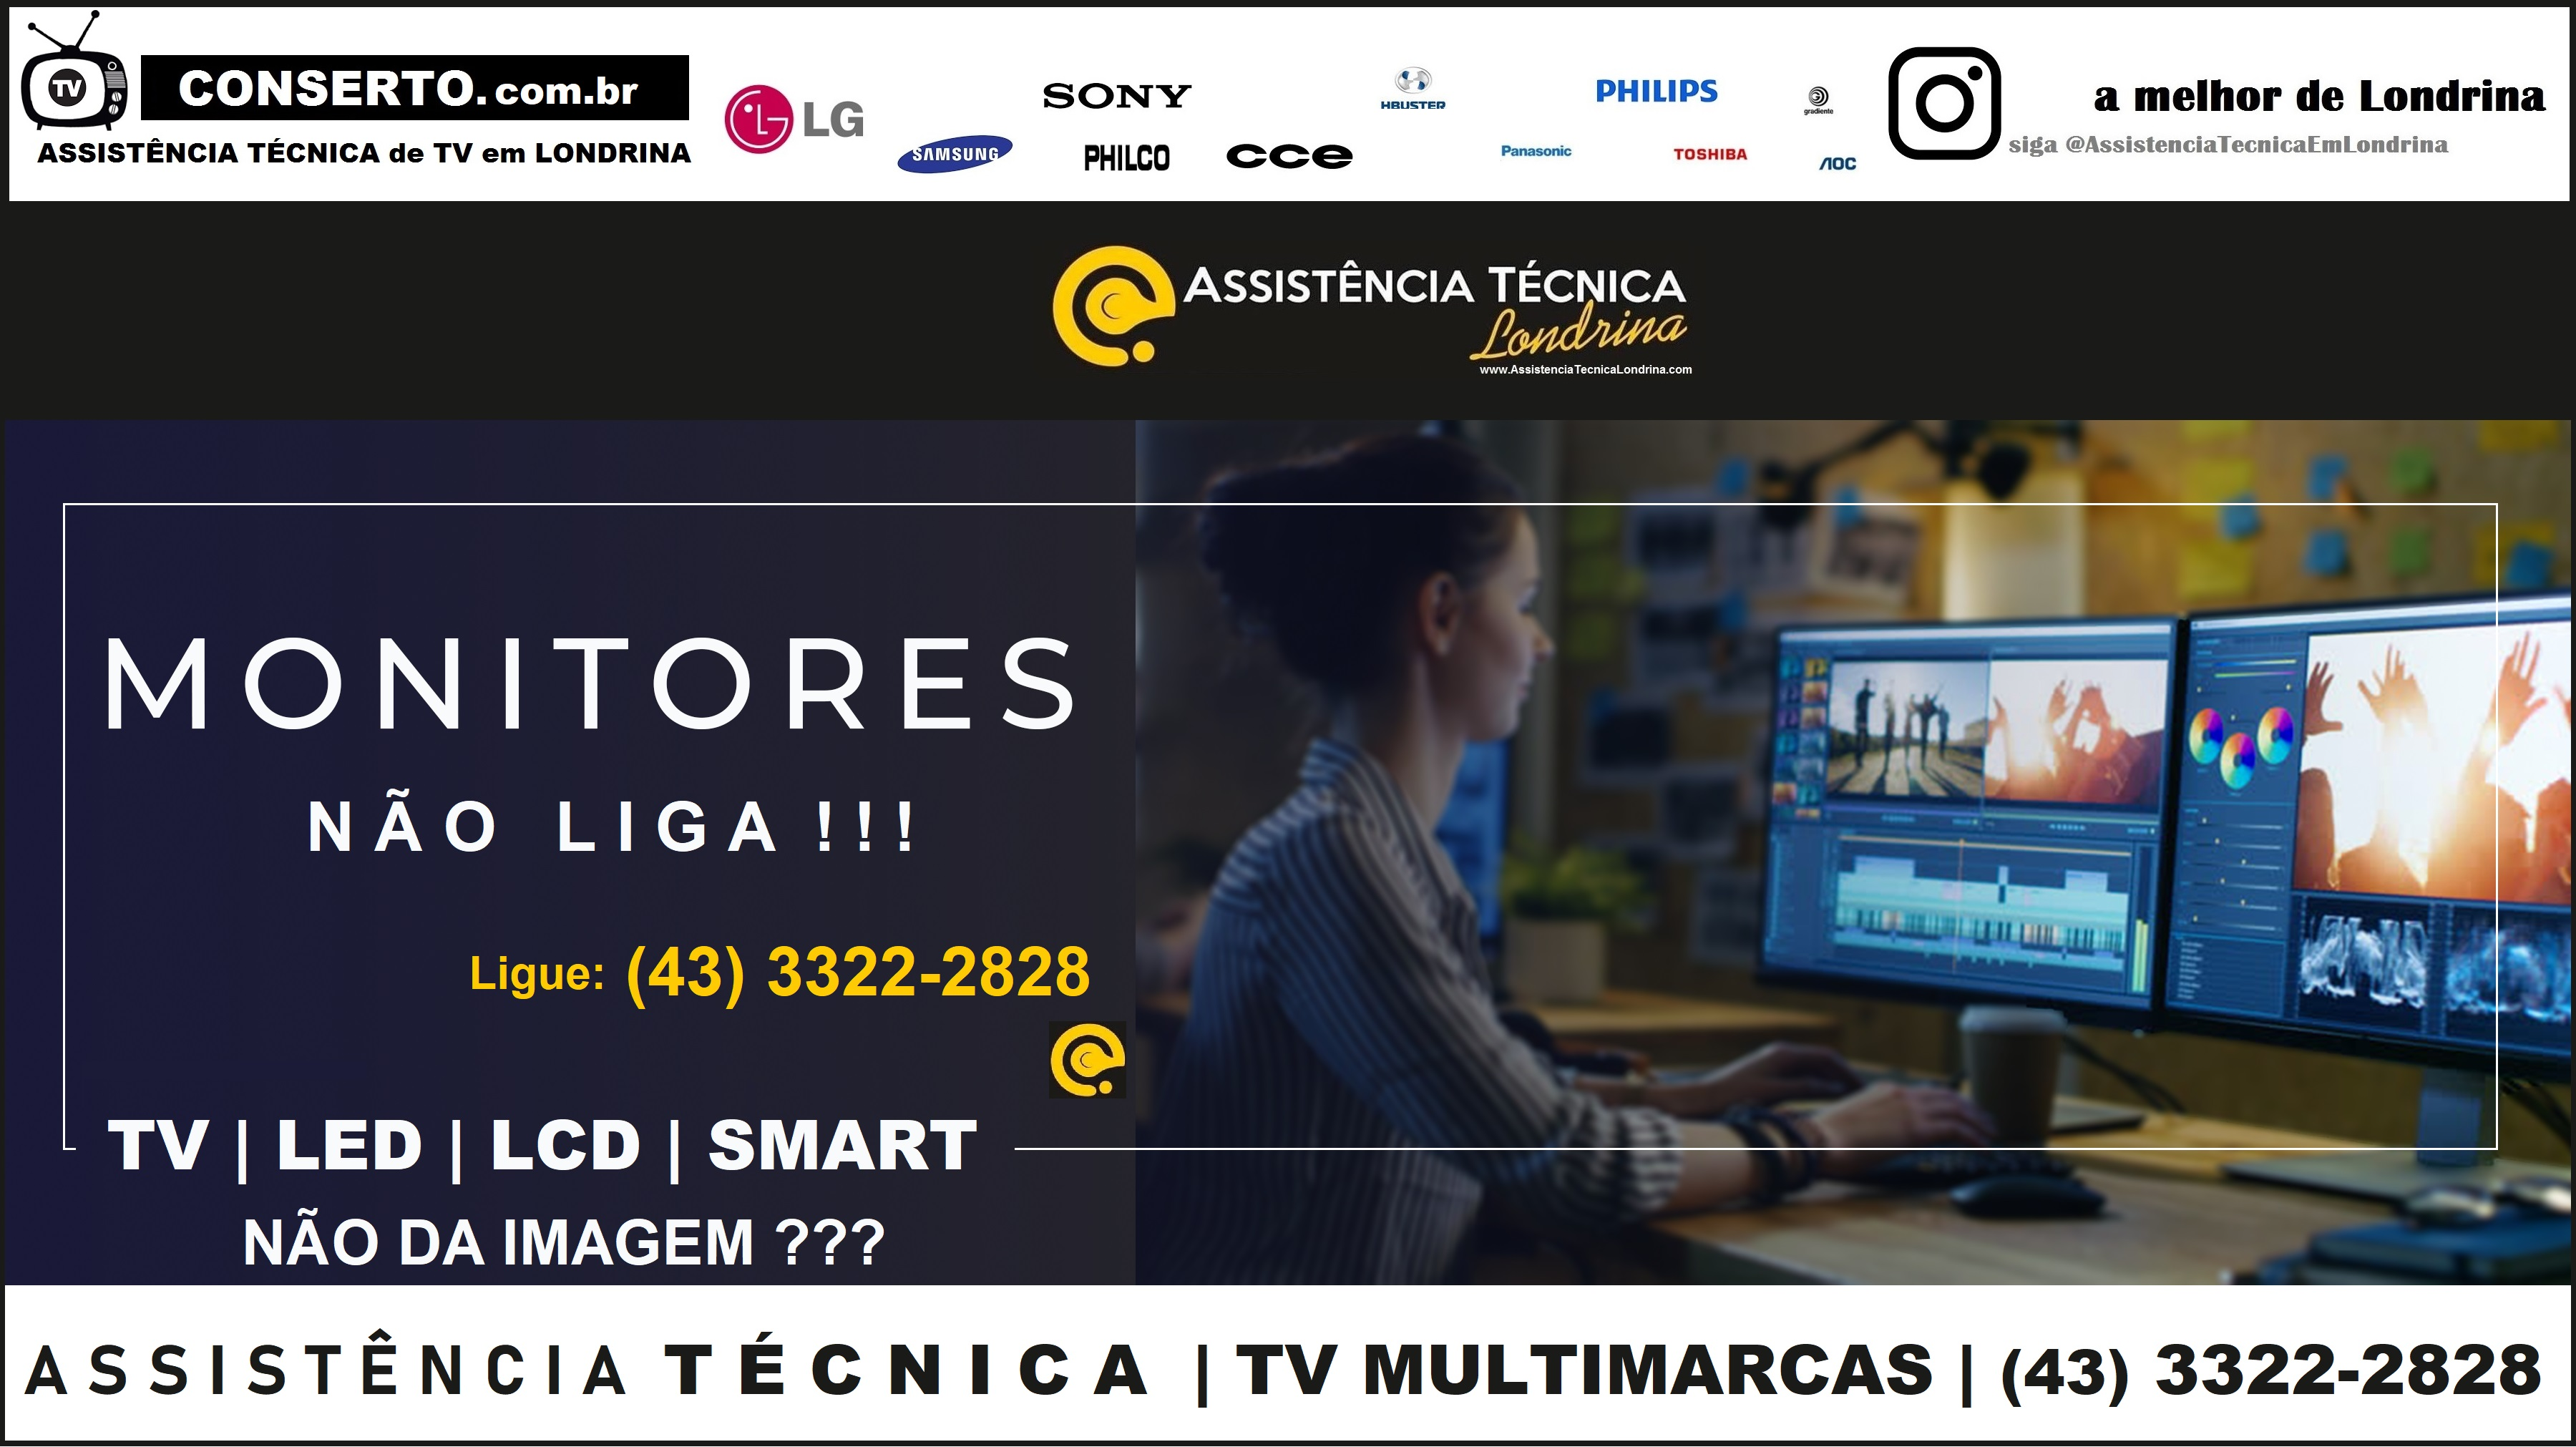 TV CONSERTO (43) 3322-2828 | TV LG, TV SAMSUNG, TV AOC, TV H-BUSTER, TV CCE, TV SONY, TV SEMP TOSHIBA, TV PHILCO, TV PHILIPS, TV PANASONIC, TV LONDRINA, TV em LONDRINA, ASSISTÊNCIA TÉCNICA de TV em LONDRINA